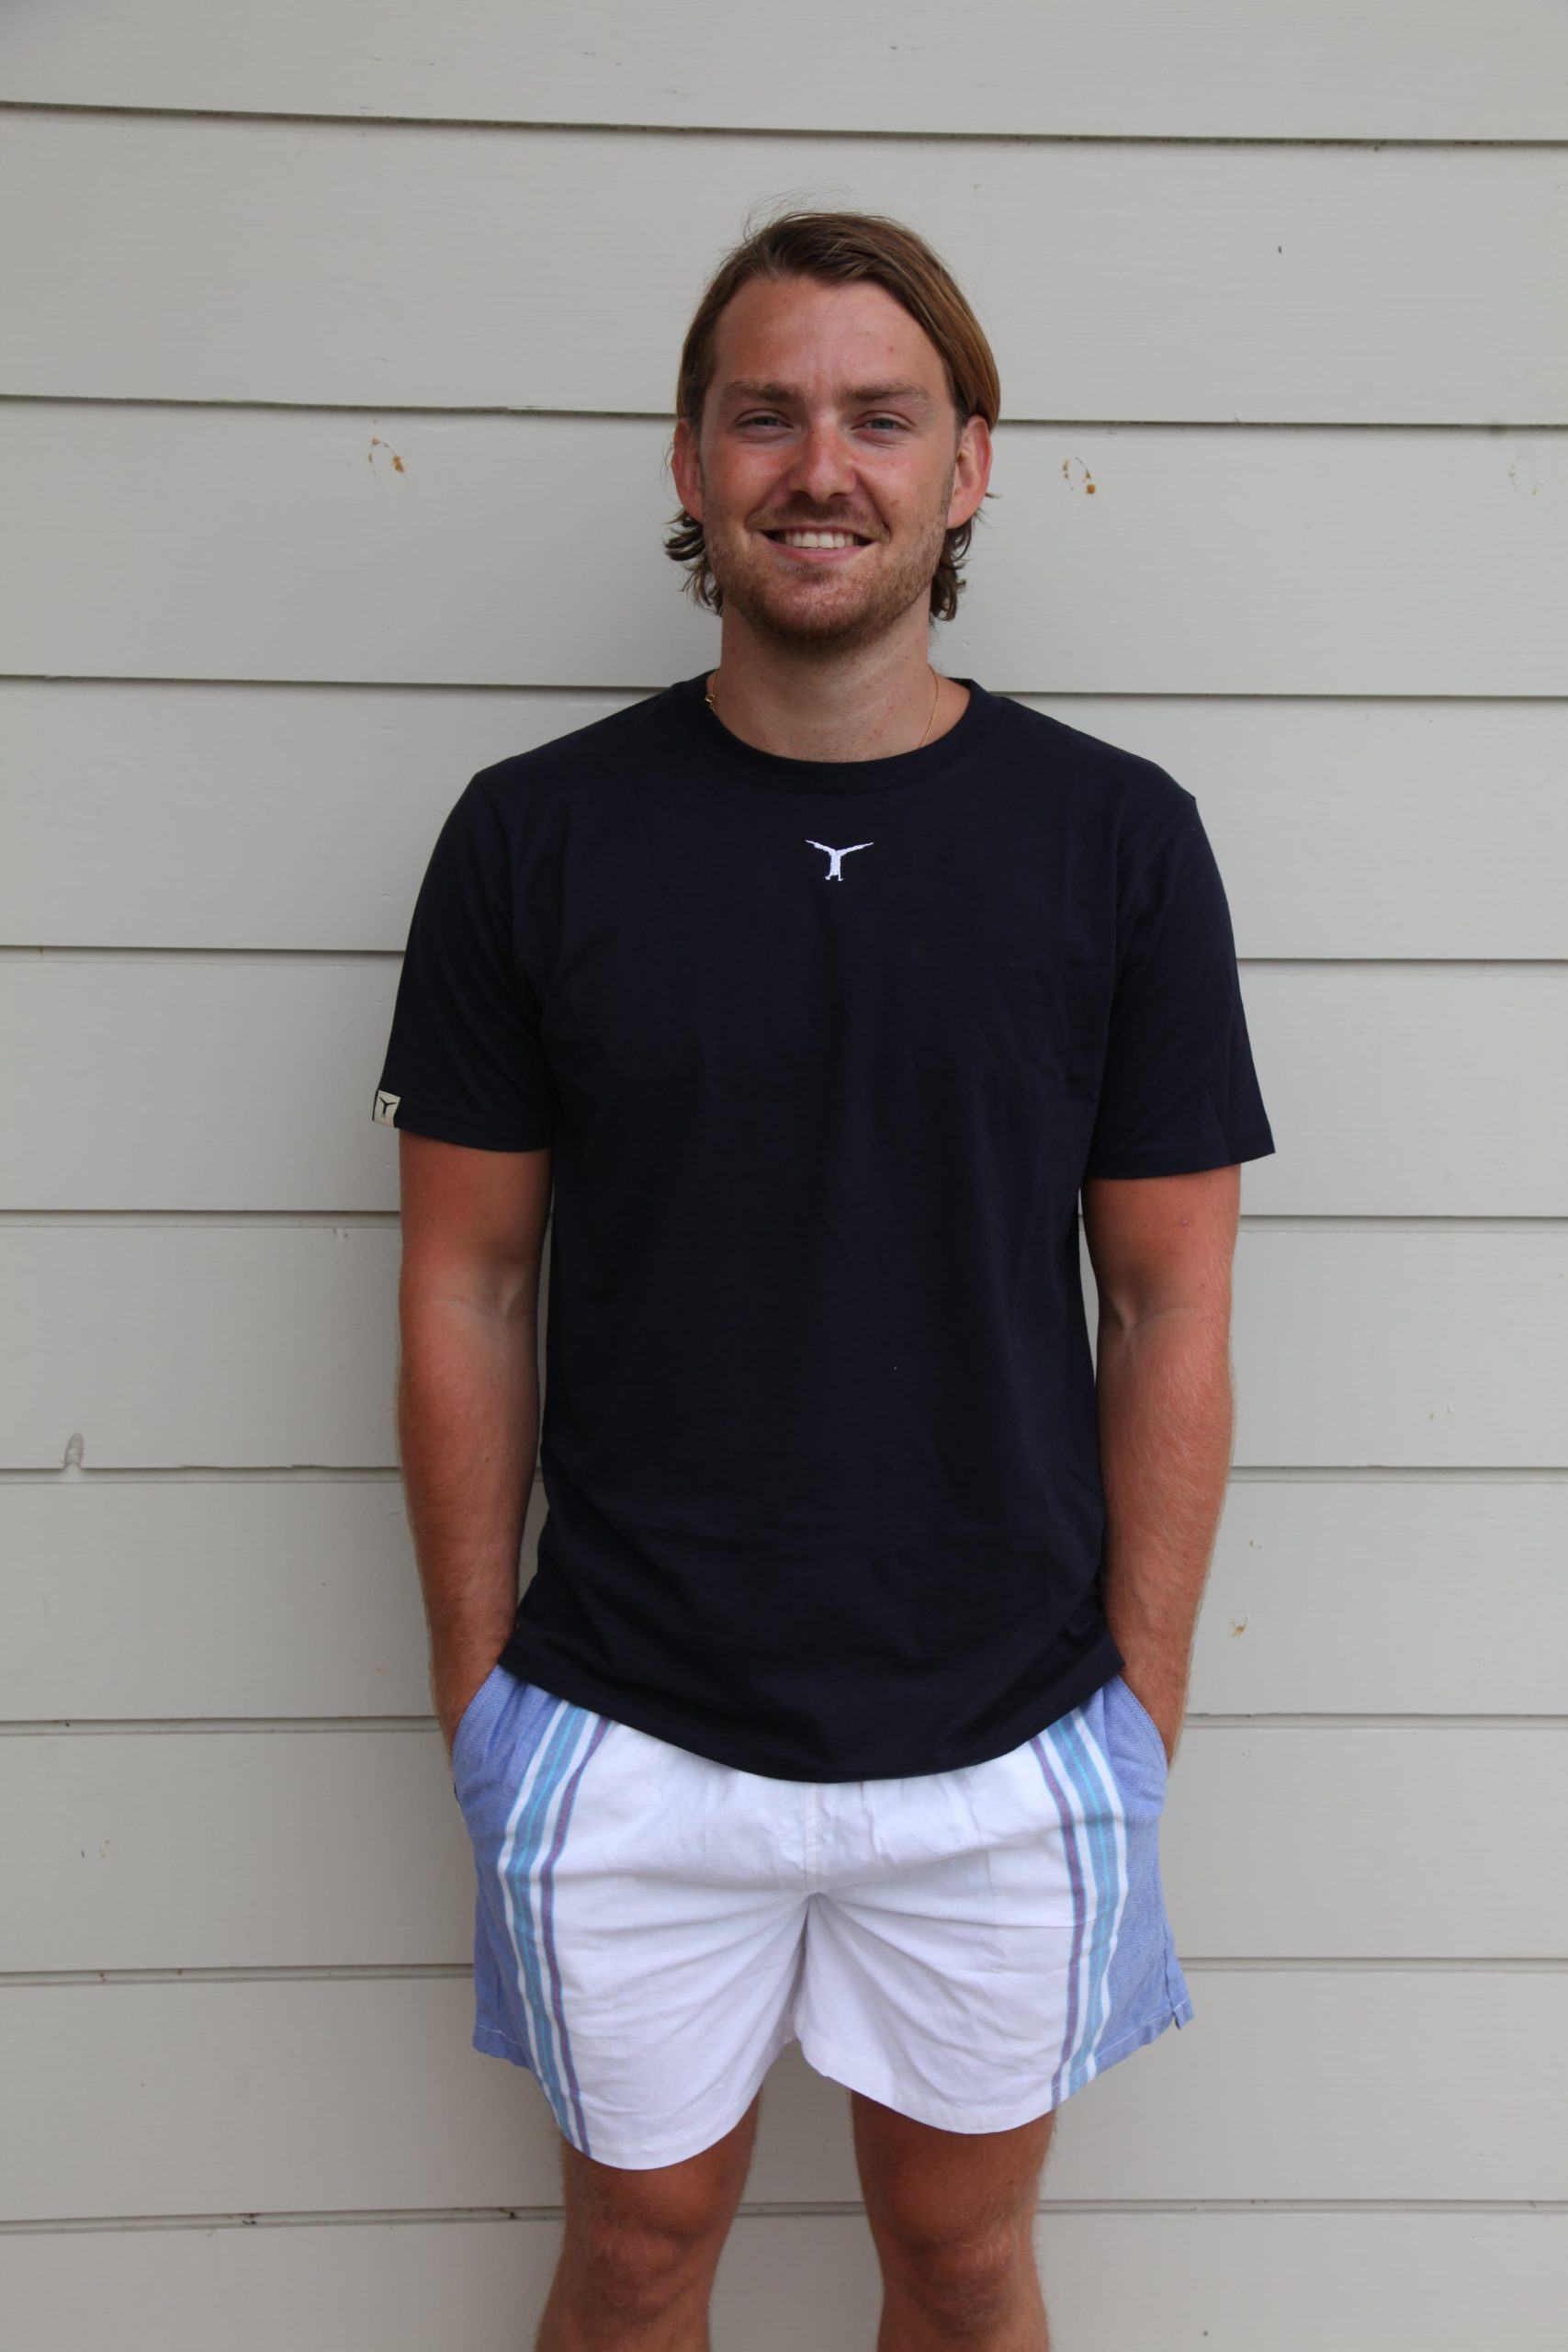 Smiling man standing in front of a wall wearing an eco-friendly t-shirt and white and blue kikoy shorts